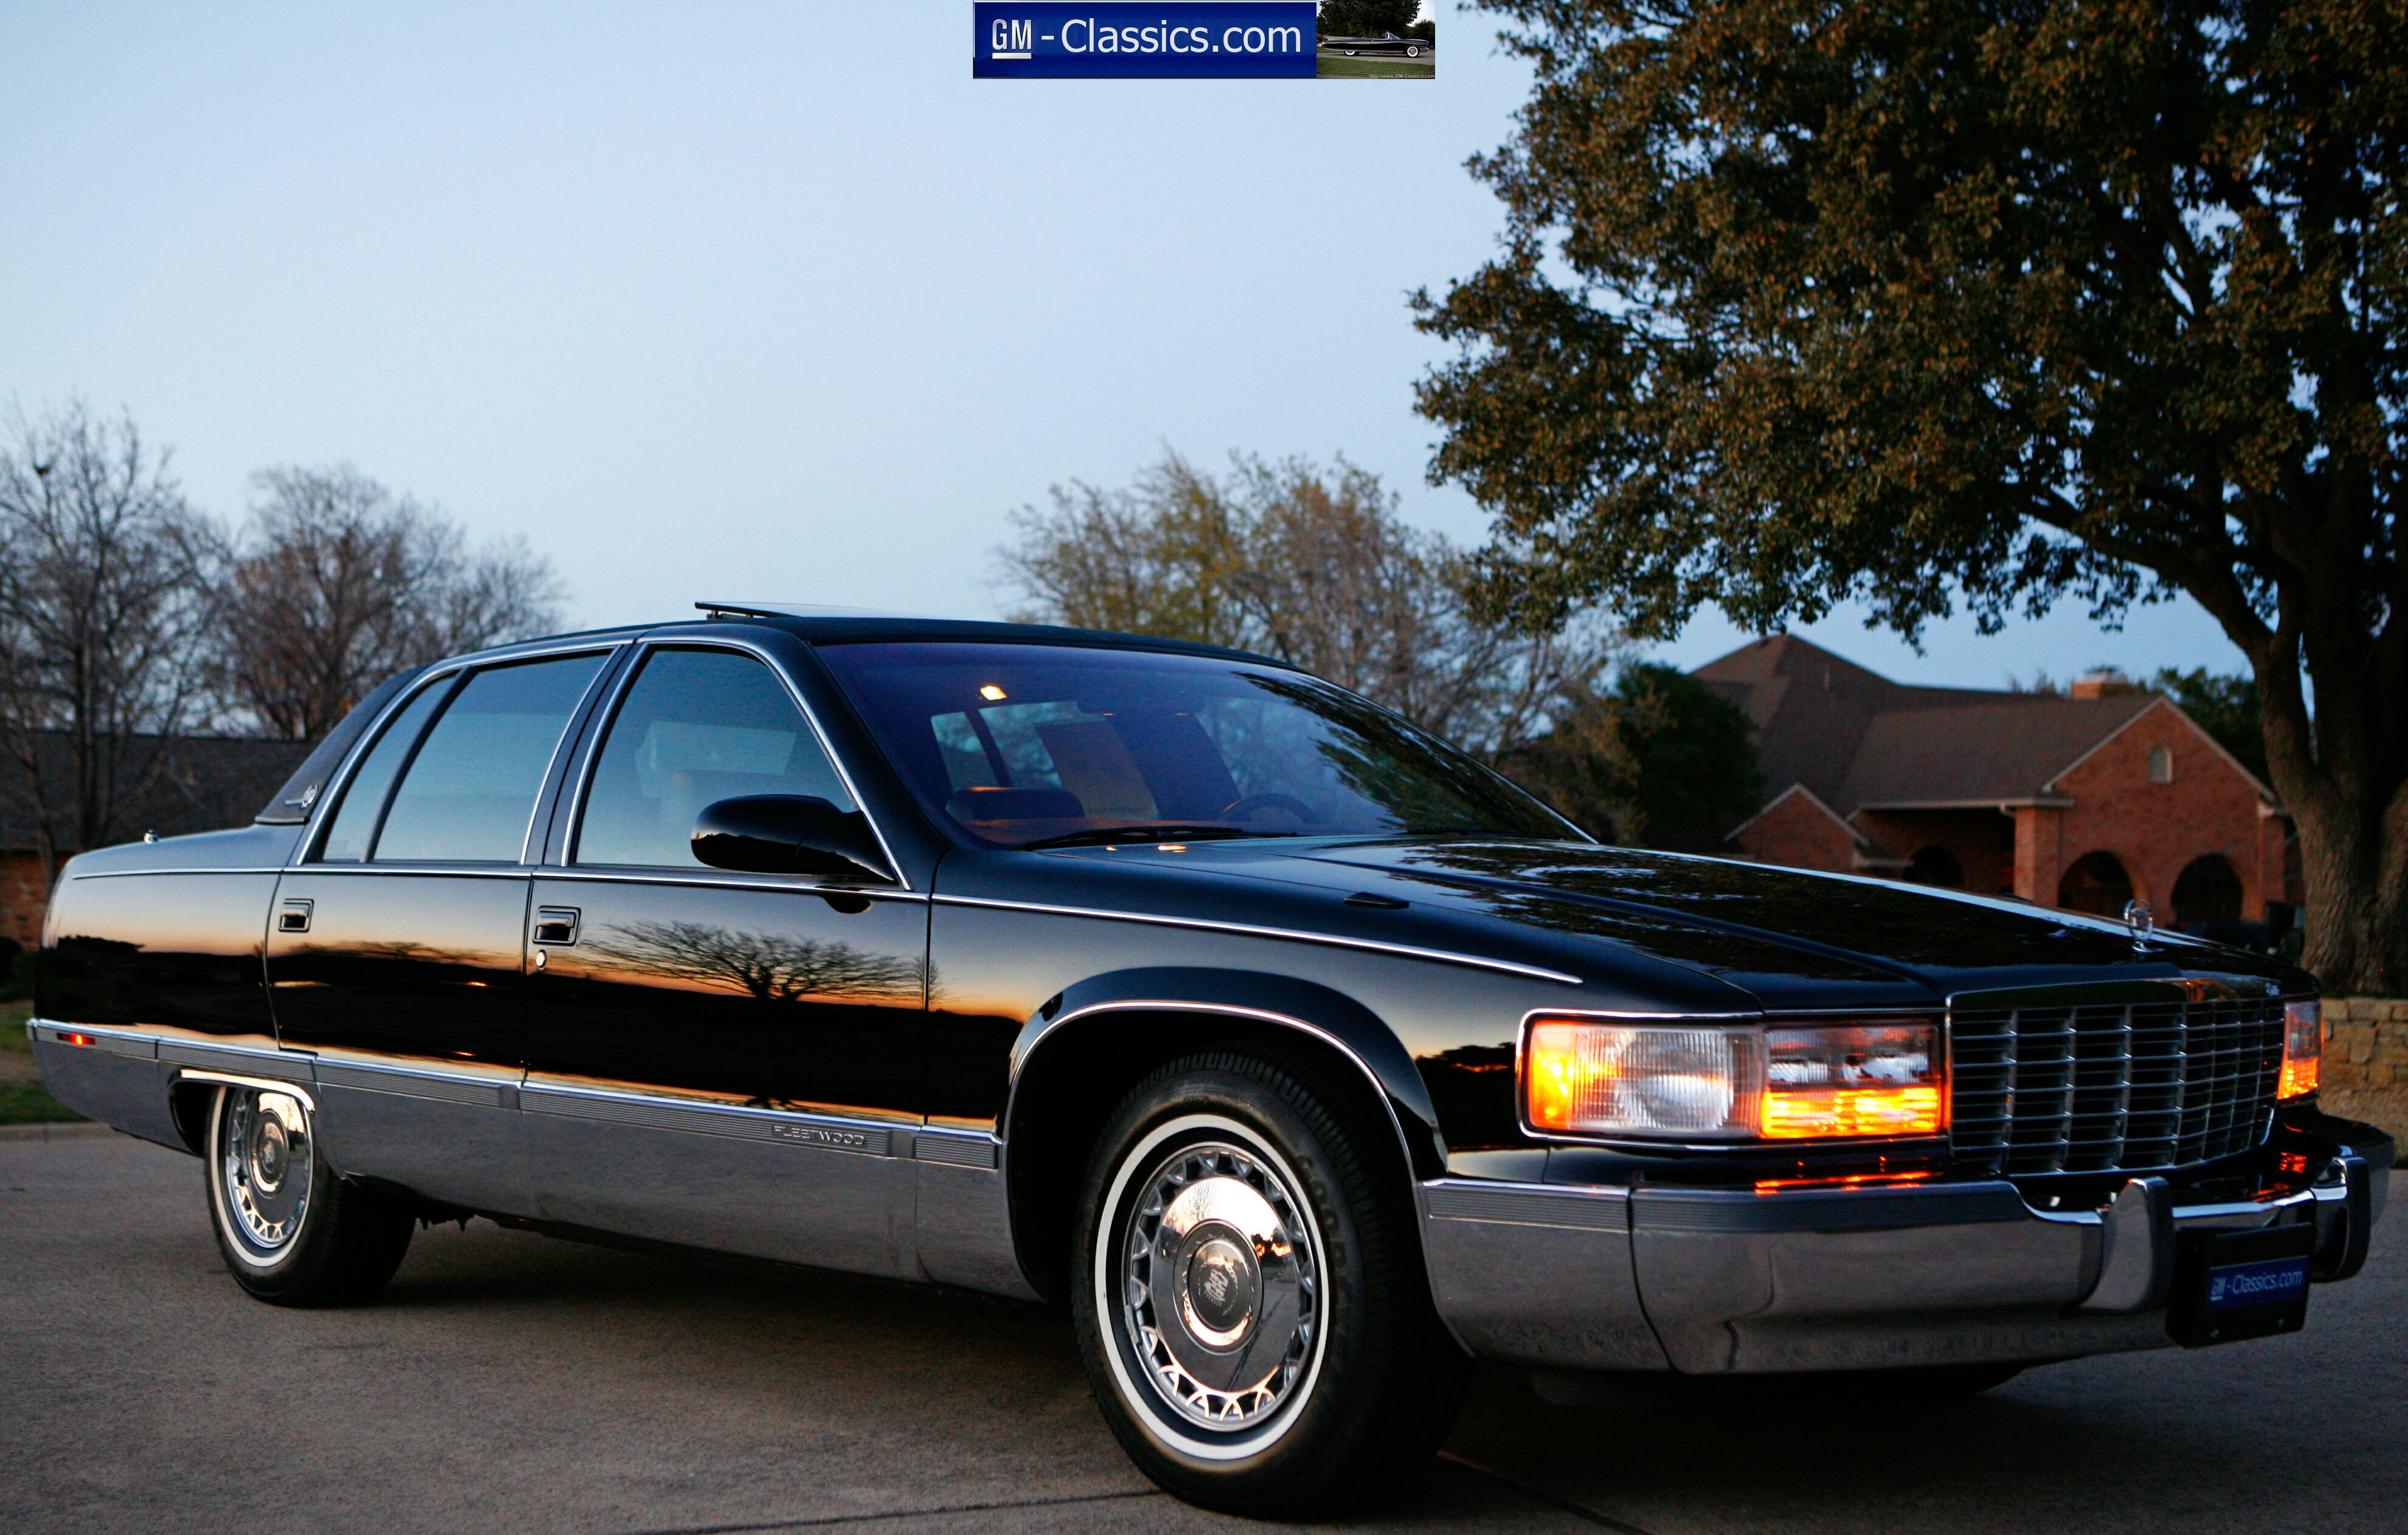 Sell new 1996 Cadillac Fleetwood Brougham LT1 - Worlds Finest Collector  Example in Carrollton, Texas, United States, for US $110,000.00